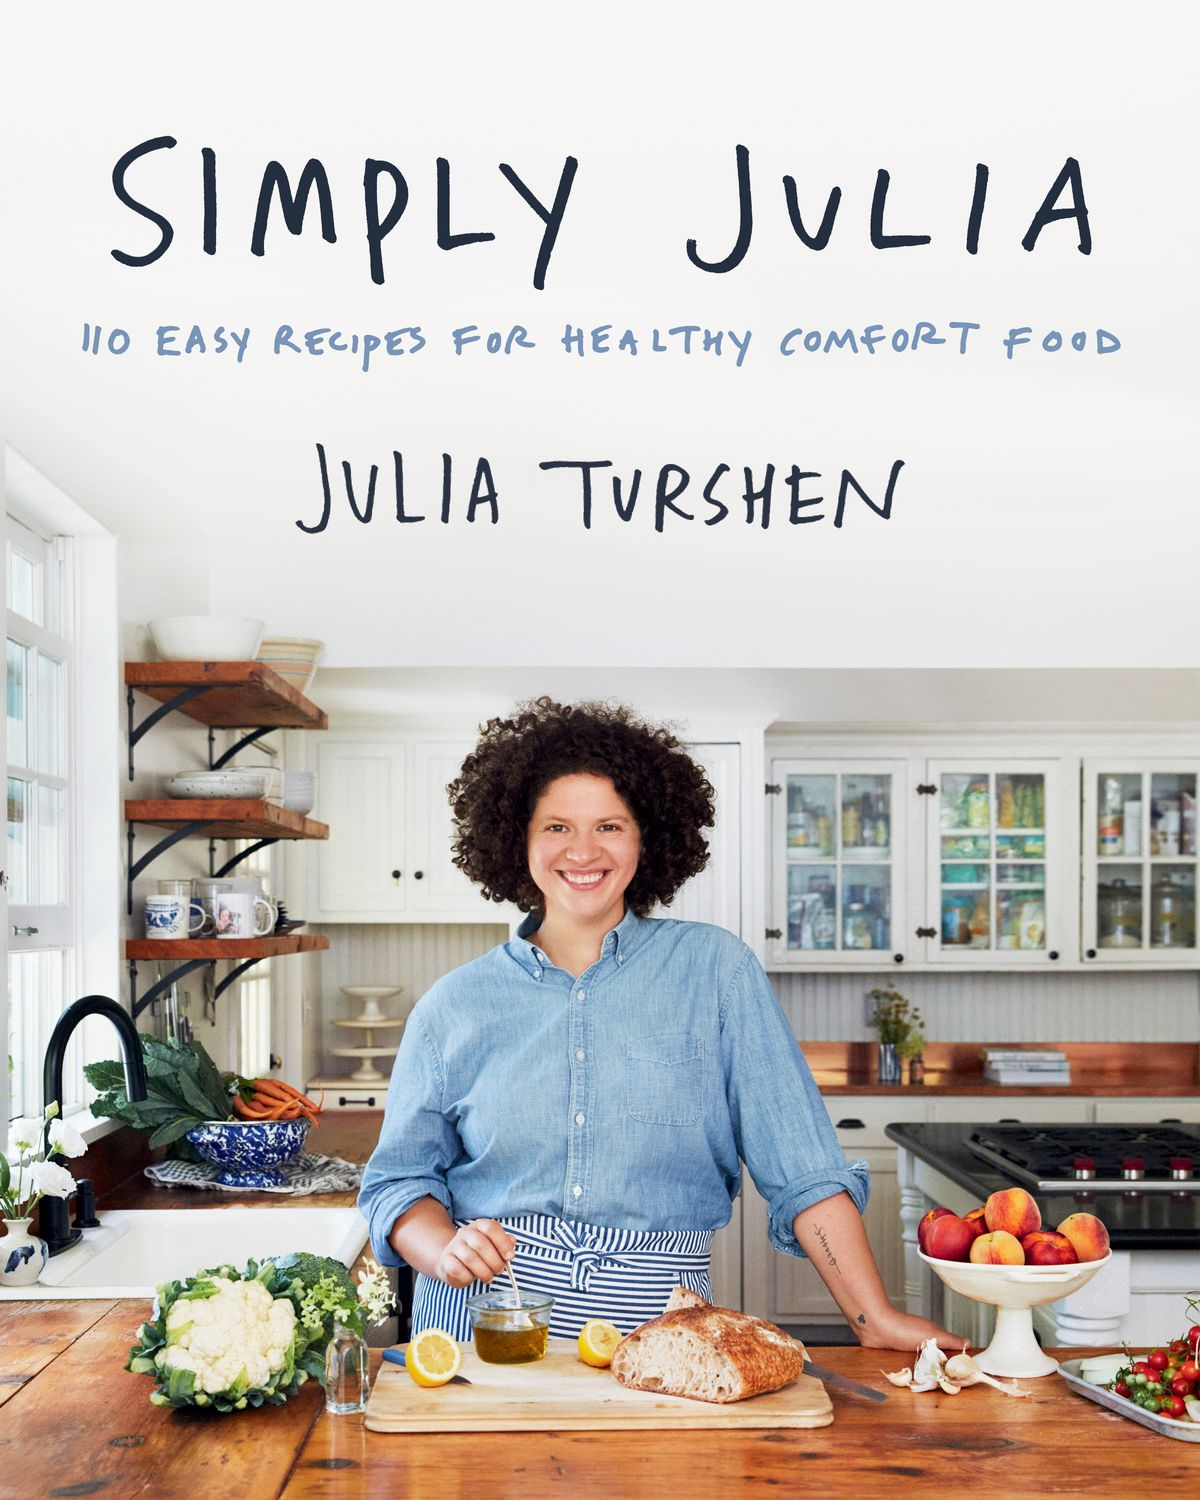 A cookbook cover with a woman in a kitchen with a cutting board placed in front of her, a bowl of peaches, and a head of cauliflower